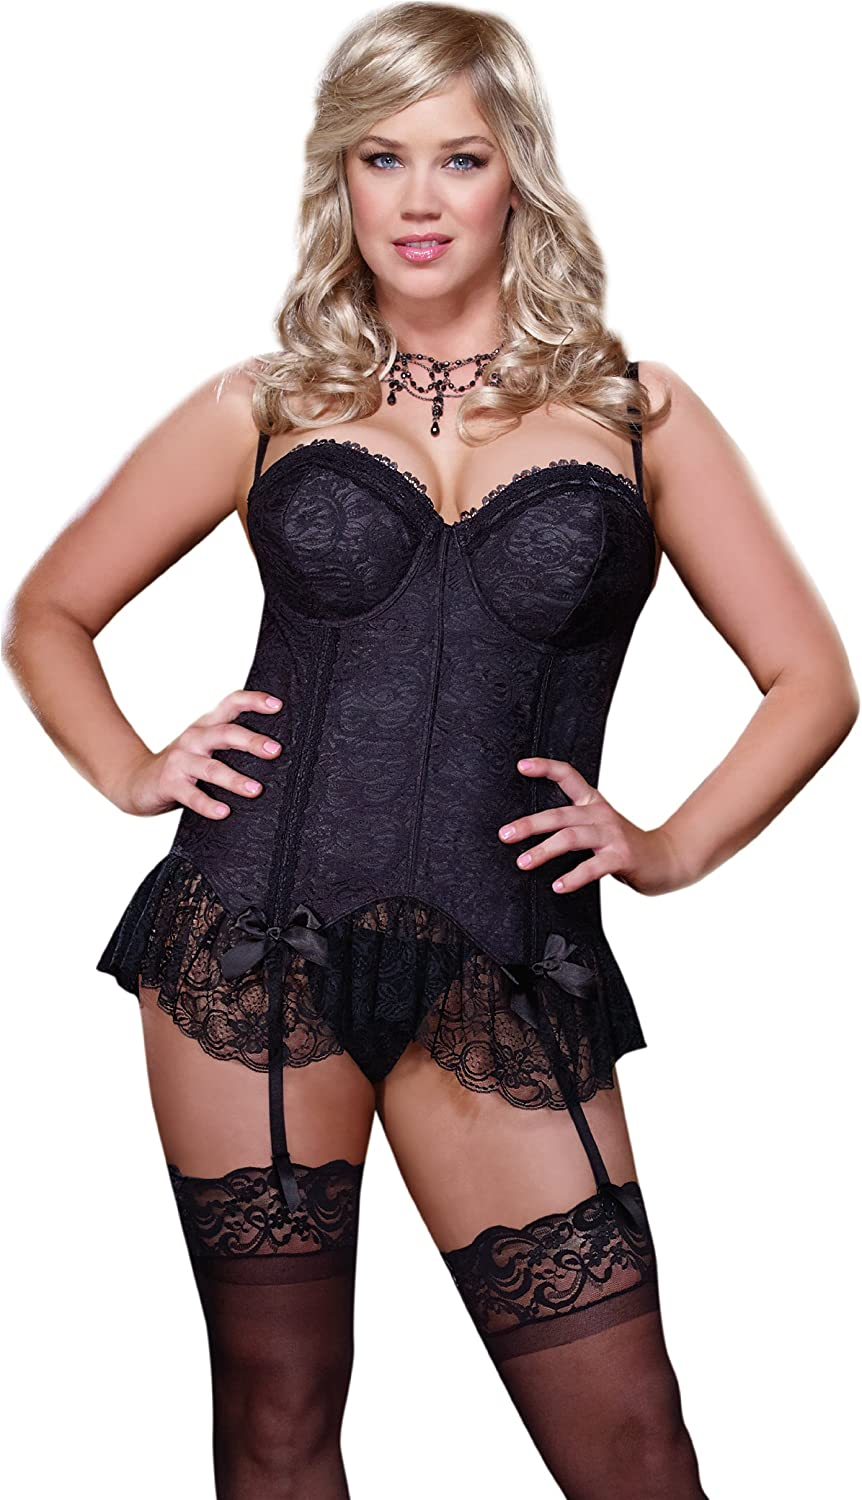 Indefinitely Dreamgirl Women's Plus Queen Size Beautiful Love is quality assurance Corset